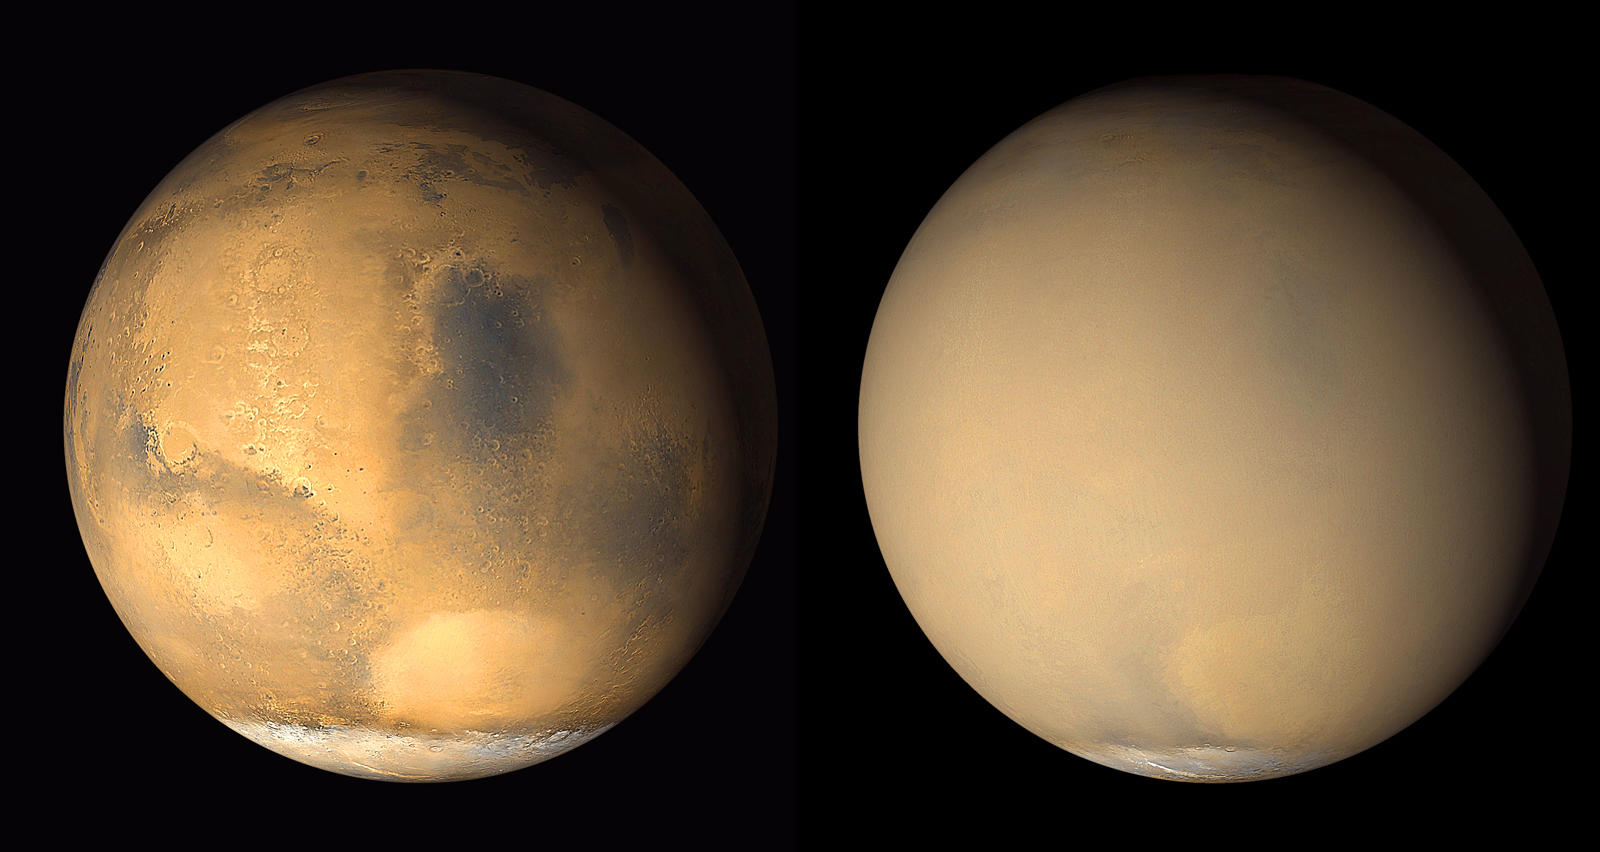 wo 2001 images from the Mars Orbiter Camera on NASA's Mars Global Surveyor orbiter show a dramatic change in the planet's appearance when haze raised by dust-storm activity in the south became globally distributed.